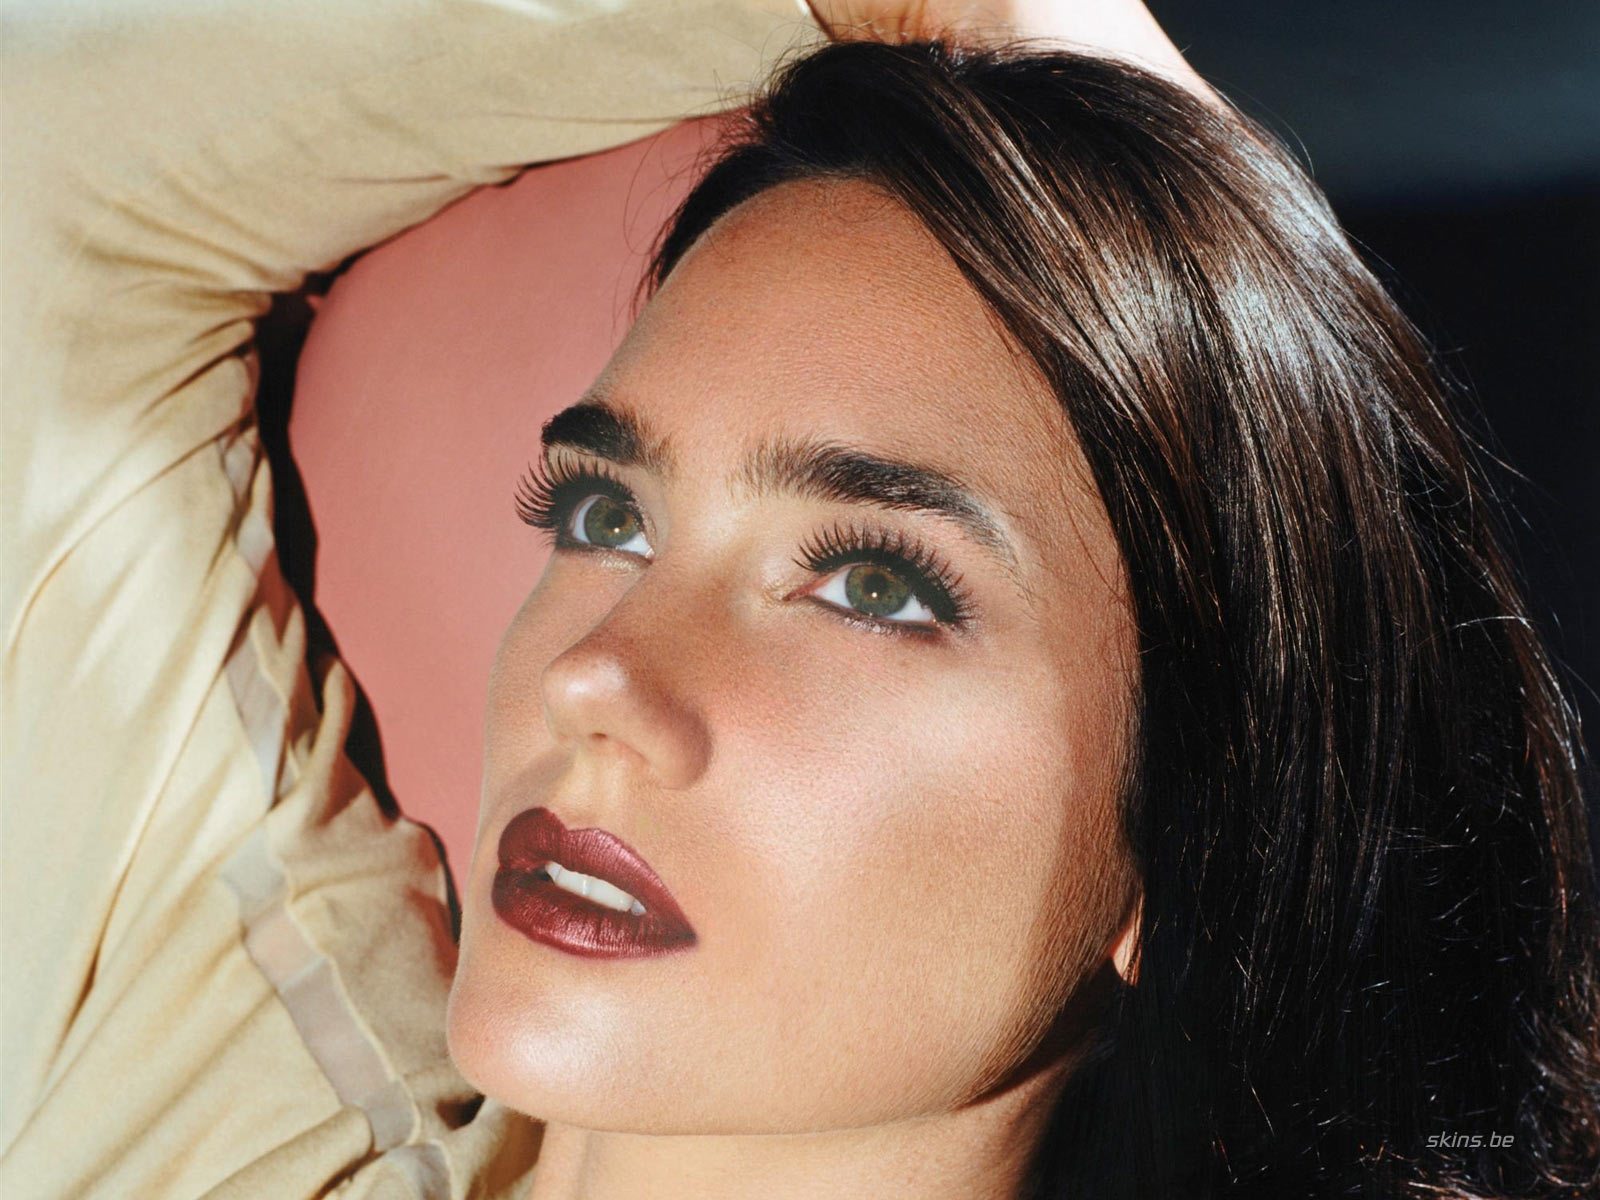 1600x1200 - Jennifer Connelly Wallpapers 19